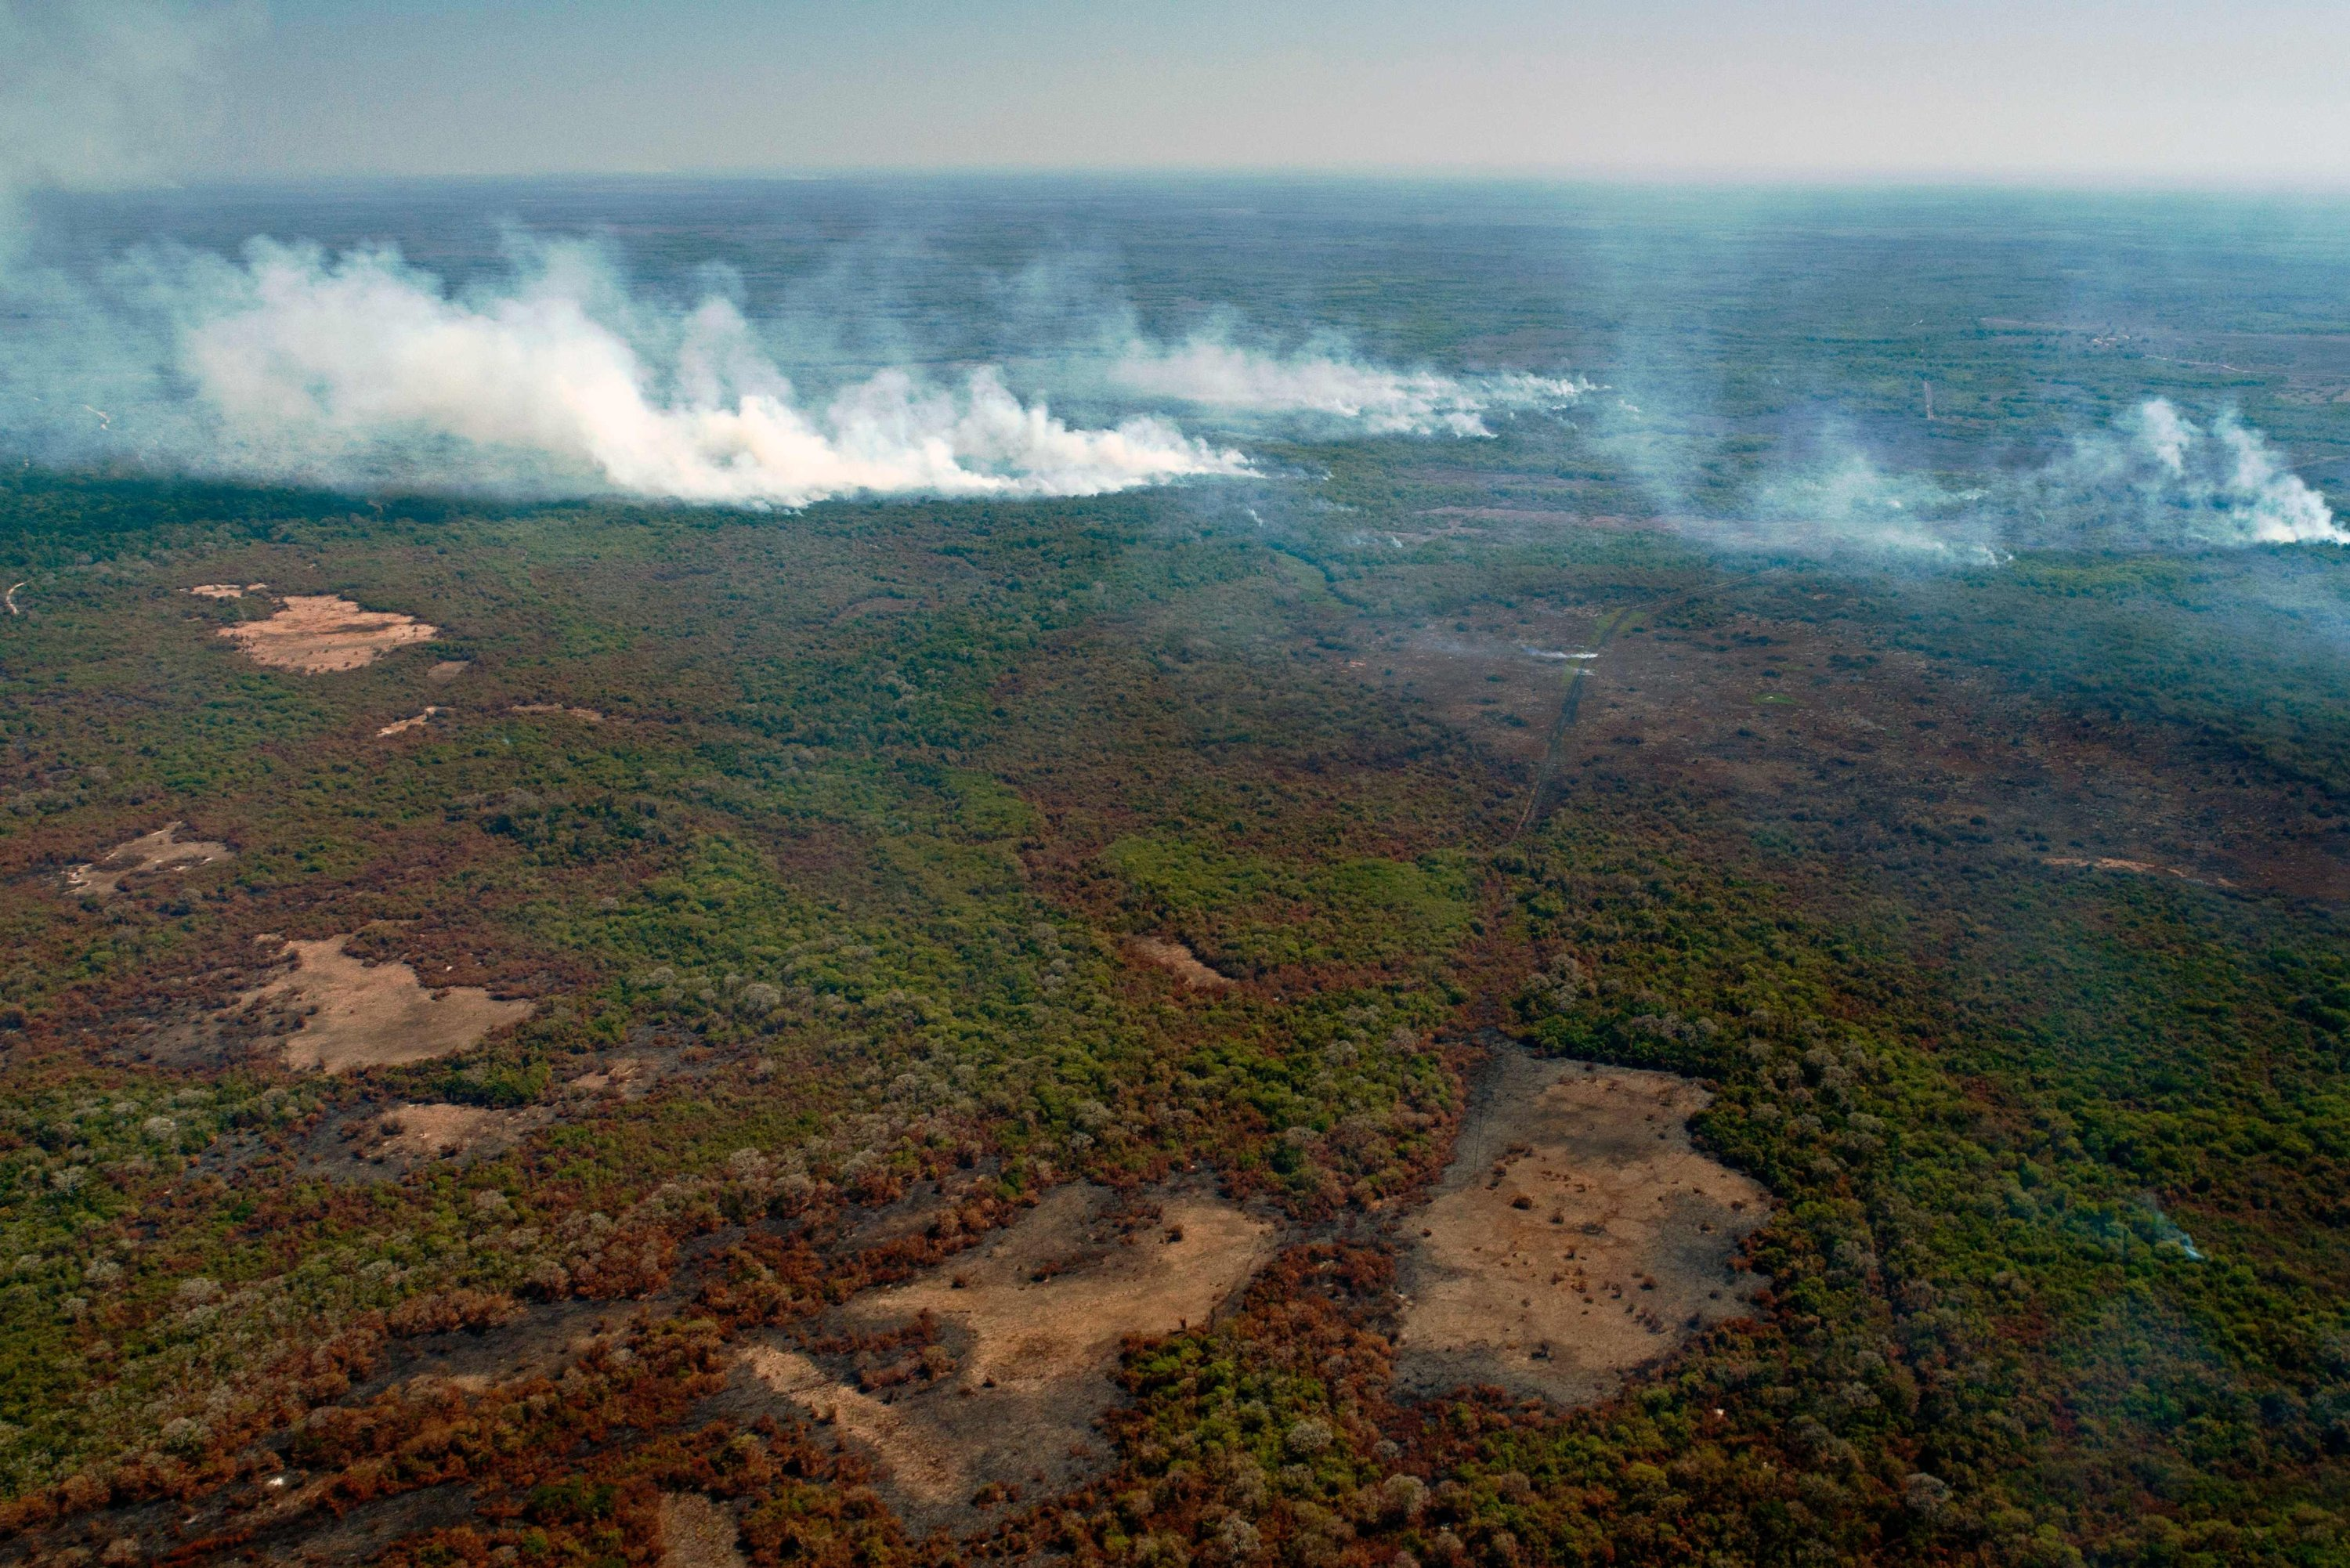 An aerial view of large-scale forest fires in Pocone, Pantanal region, the largest tropical wetlands in the world, Mato Grosso state, Brazil, Aug. 1, 2020. (AFP Photo)